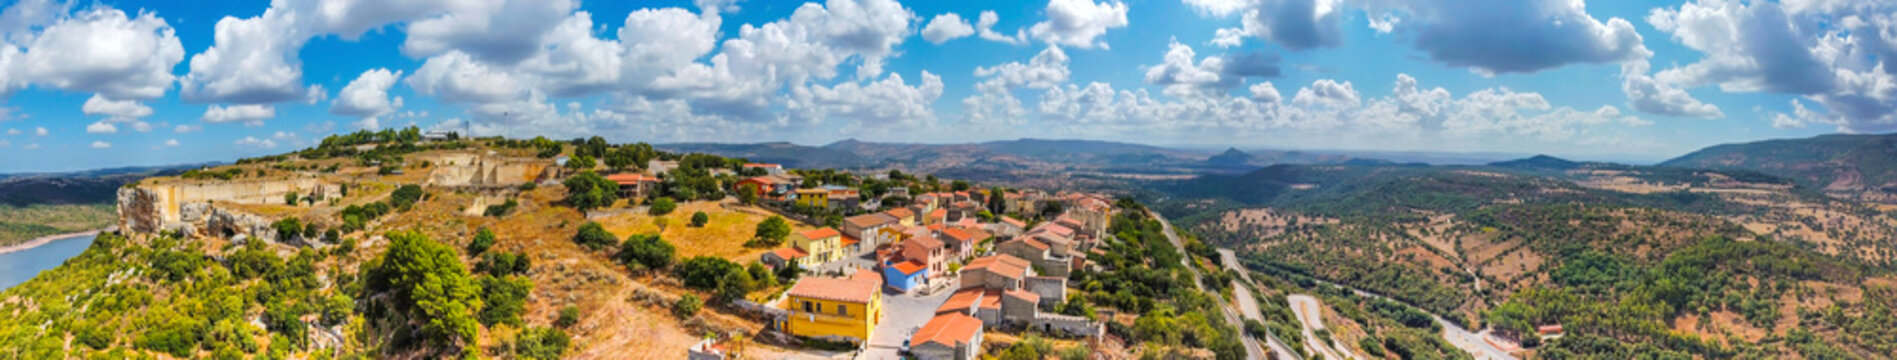 Panoramic view of Monteleone Roccadoria under a cloudy sky